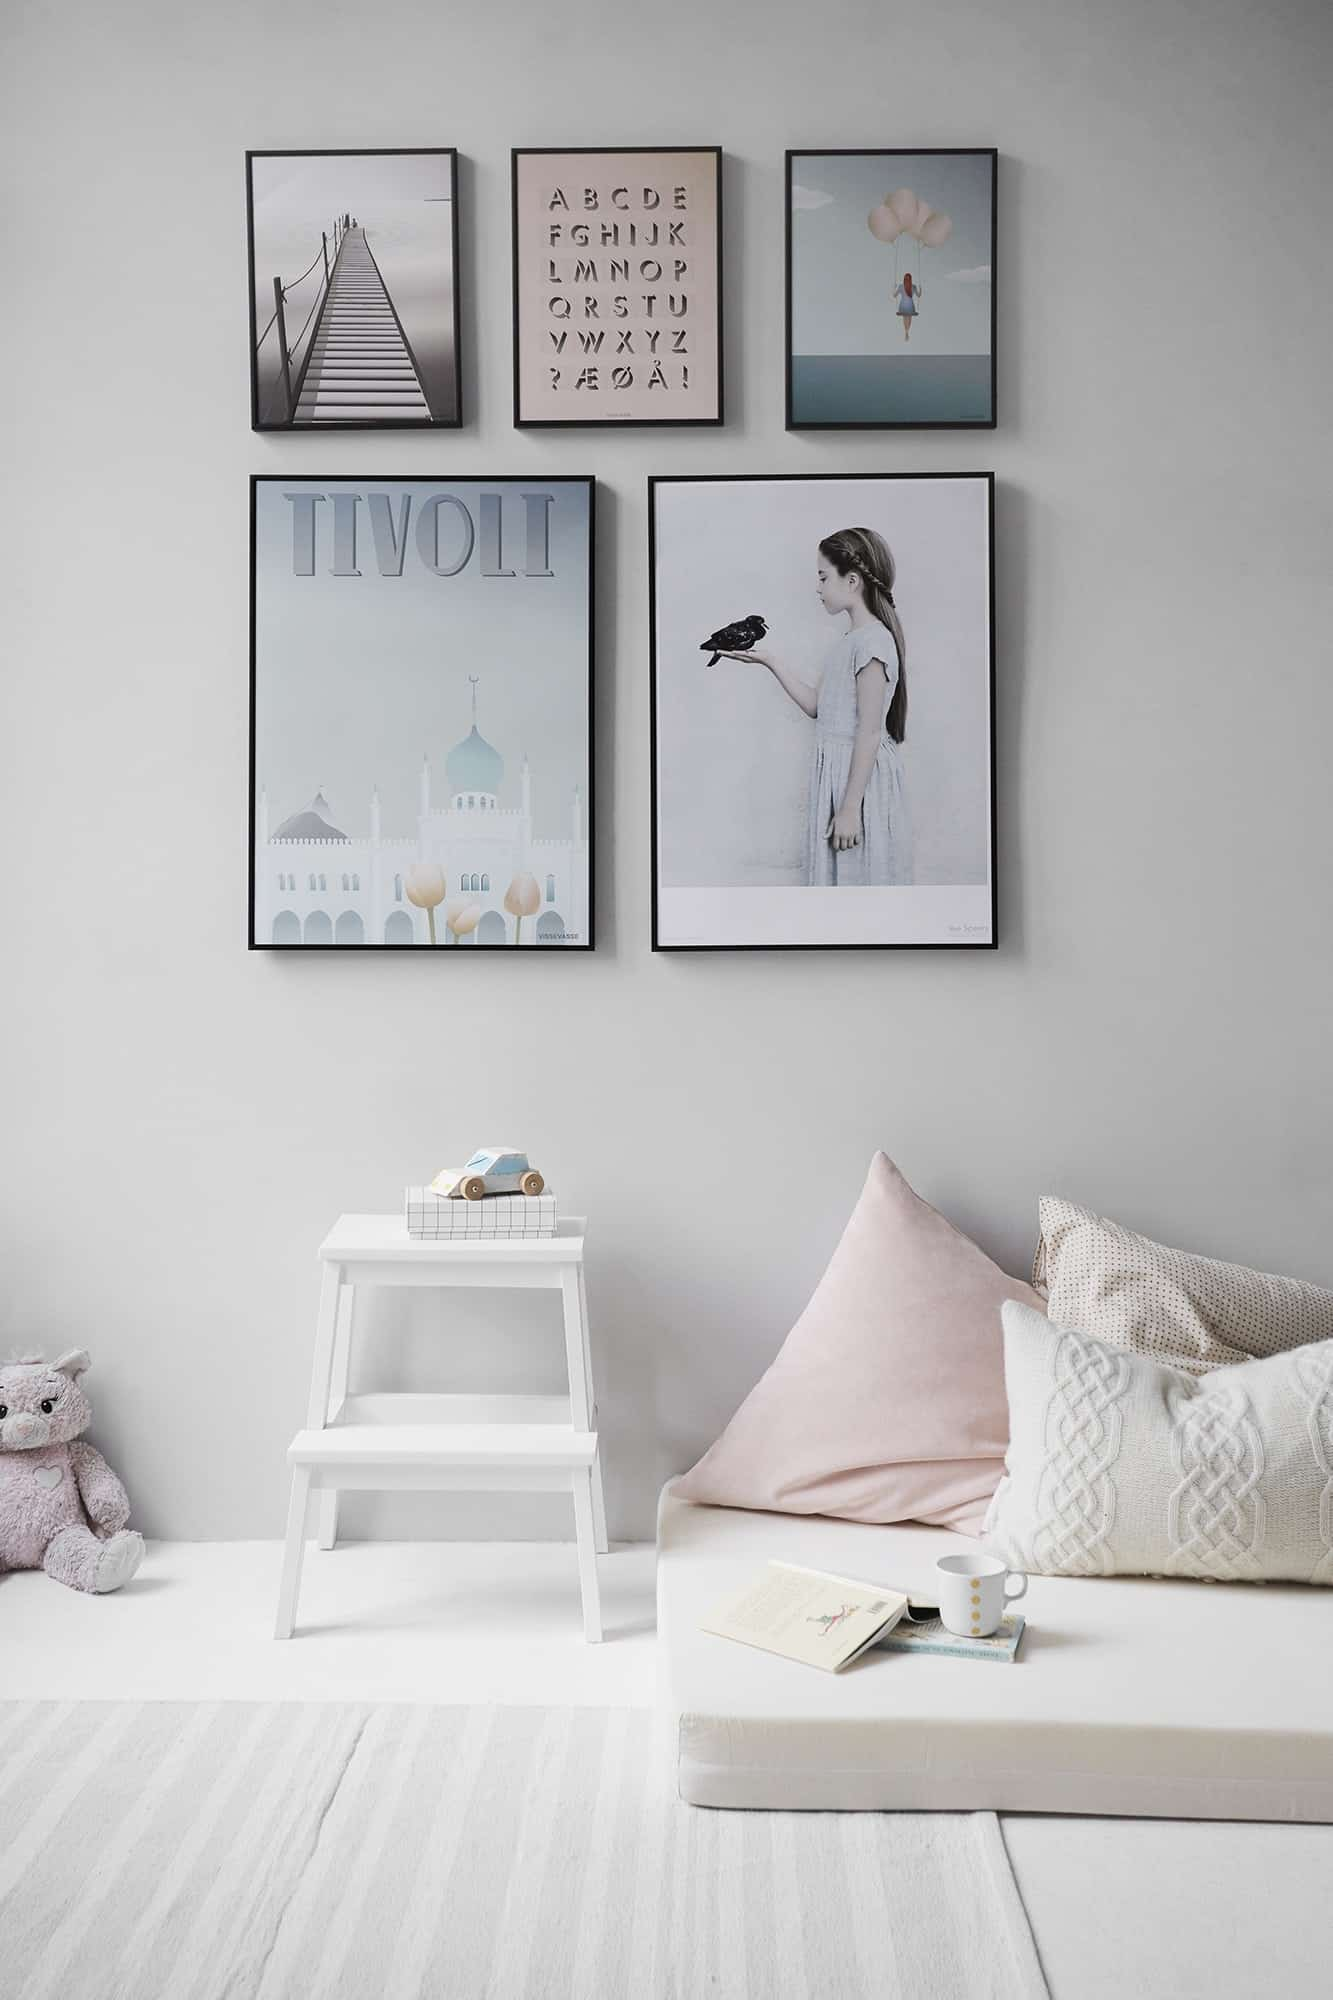 Decor Ideas For Home Improvement - Why Do You Need These?